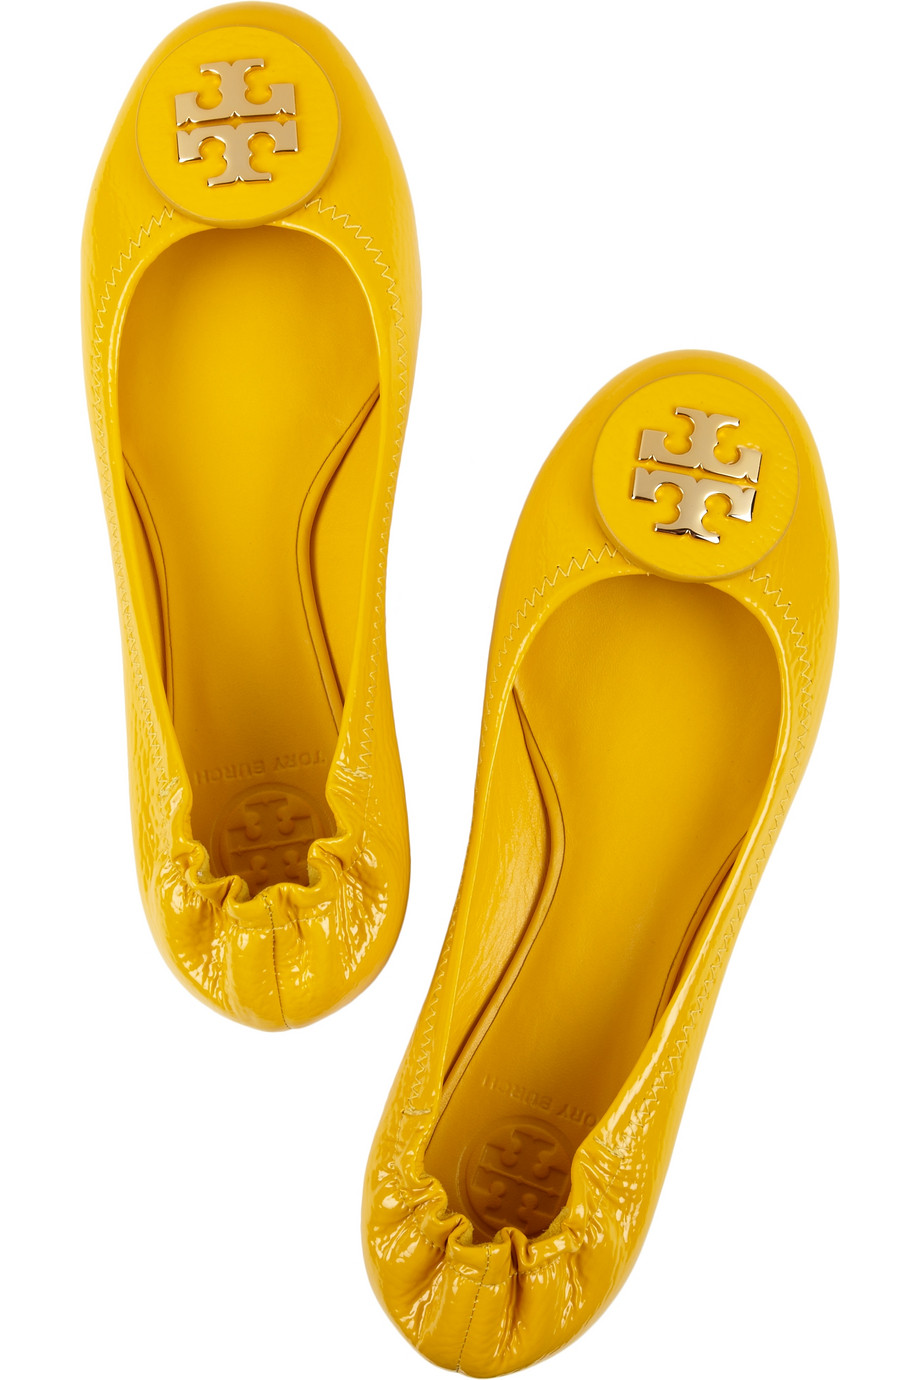 8d2897d7751243 ... denmark lyst tory burch reva tumbled patent leather ballet flats in  yellow 1d2b4 543a7